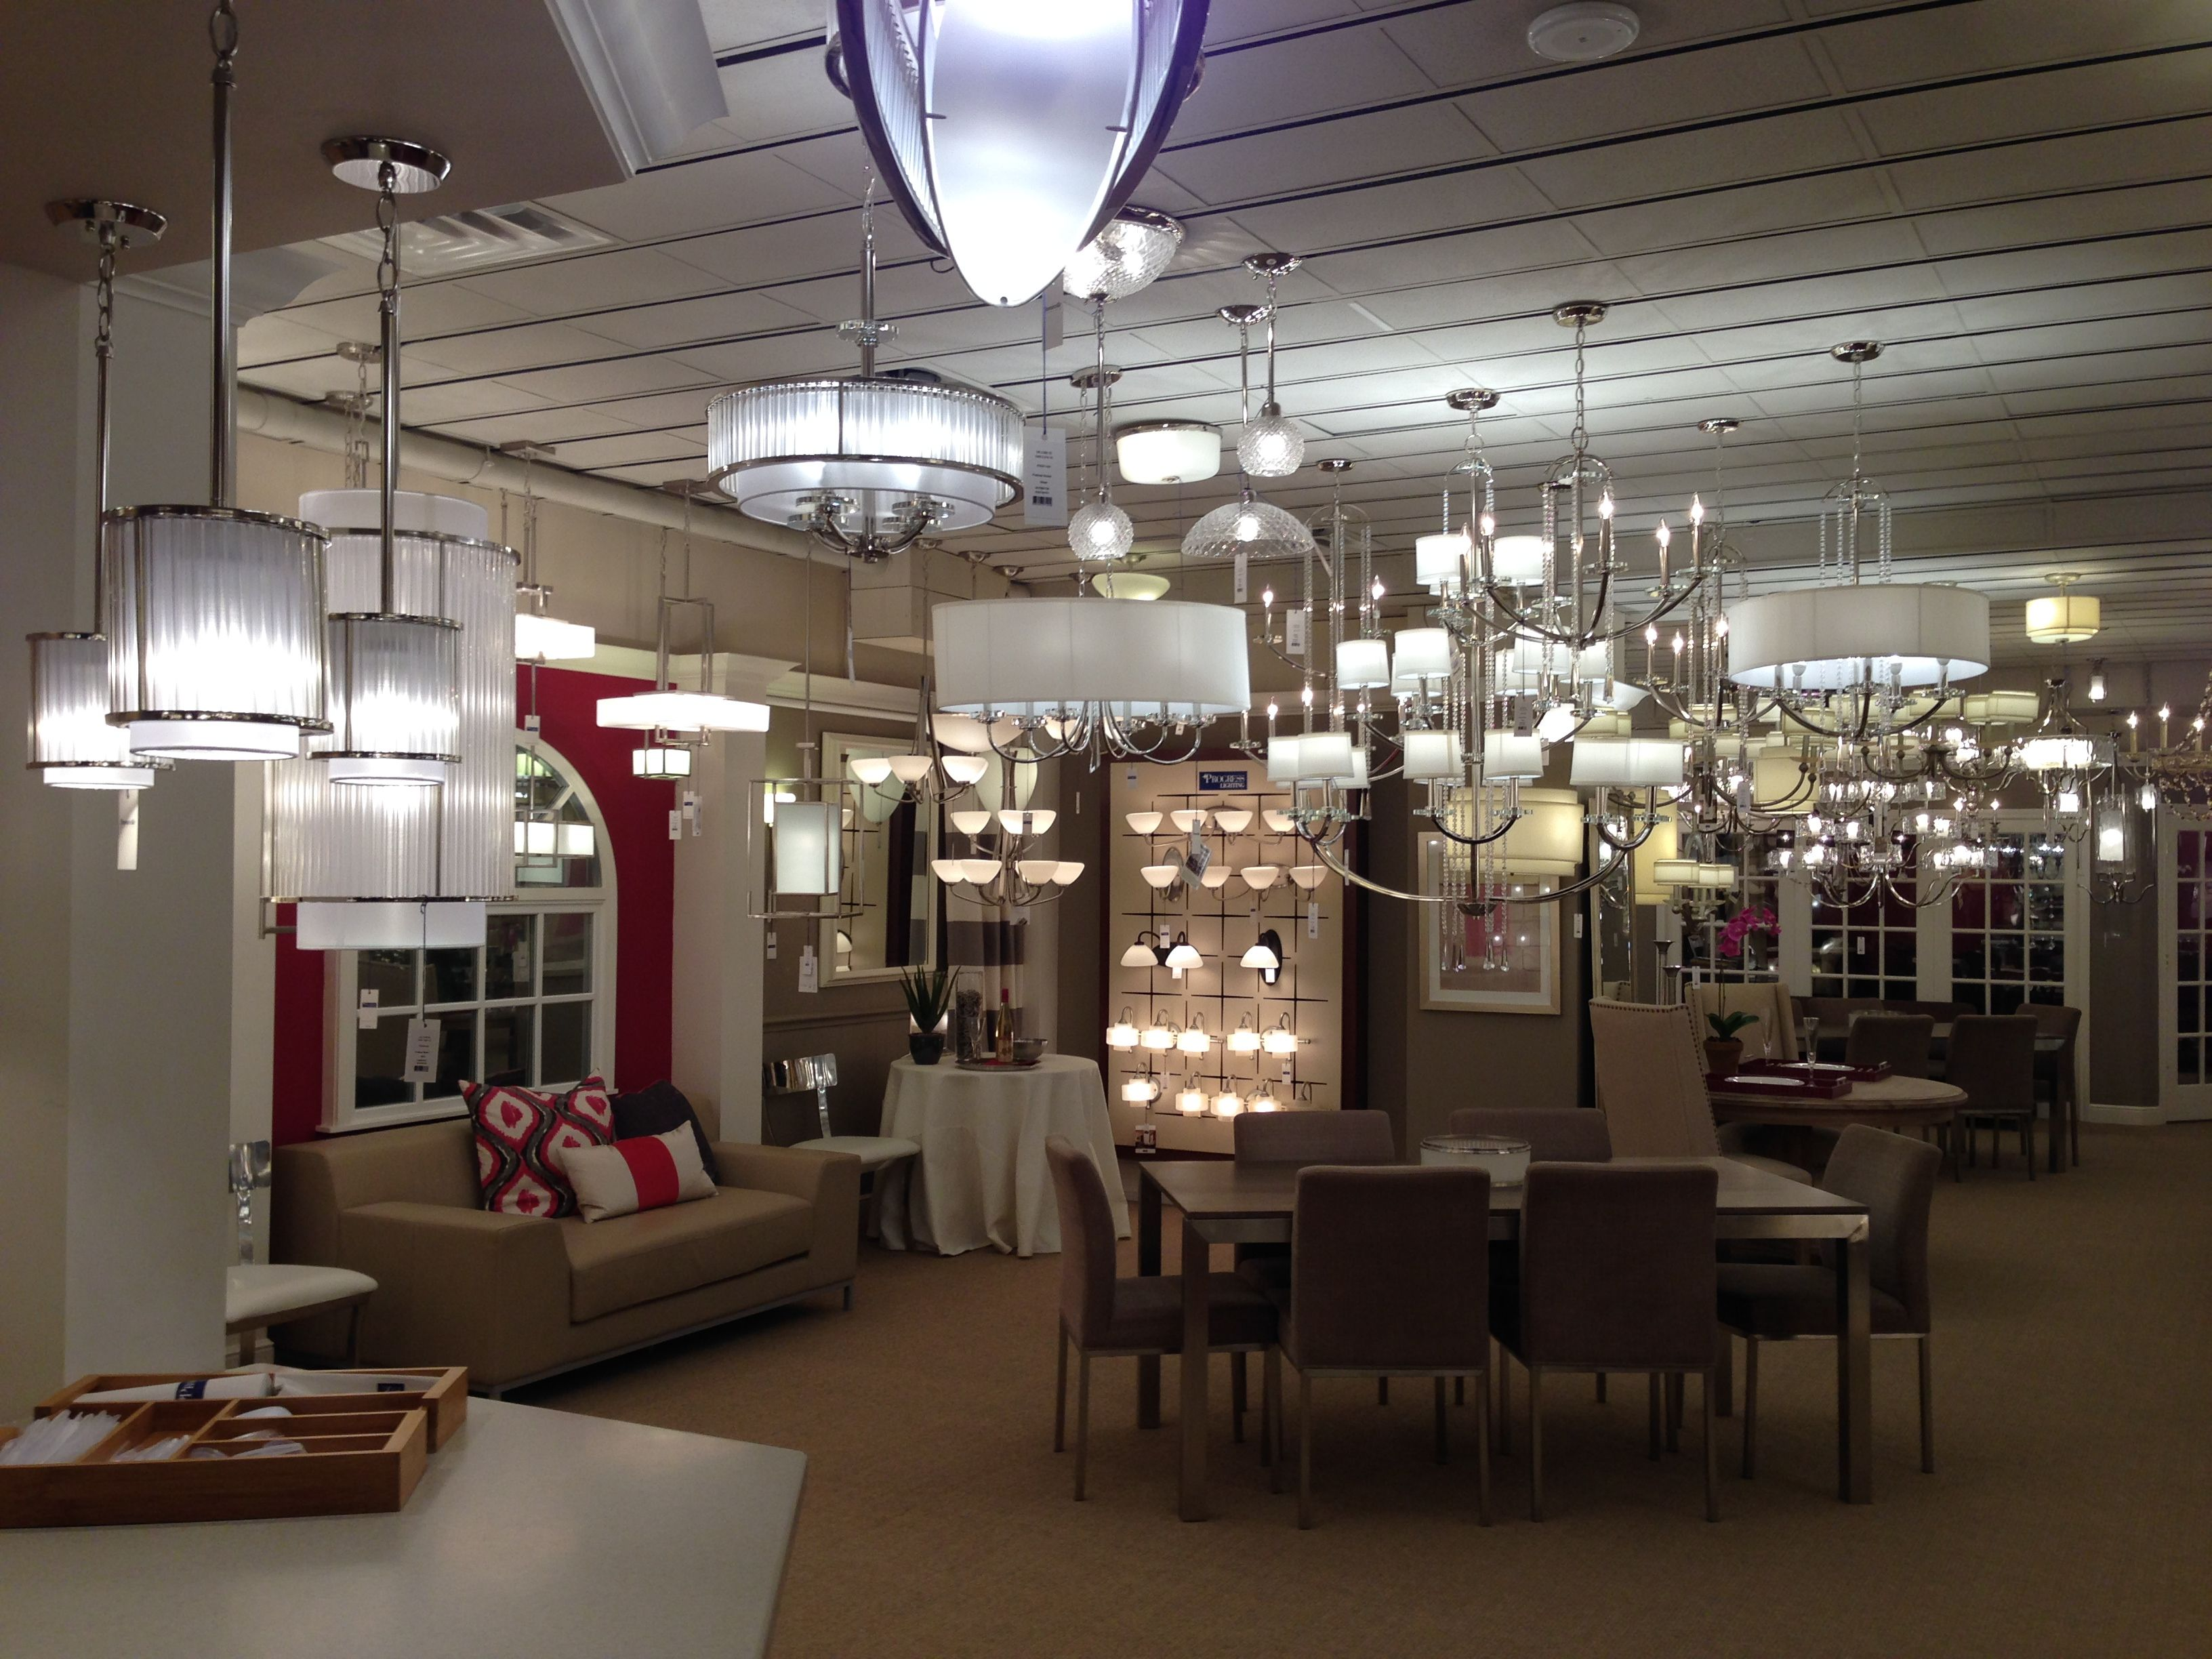 Marvelous The Progress Lighting Showroom At Dallas Market (January 2014)